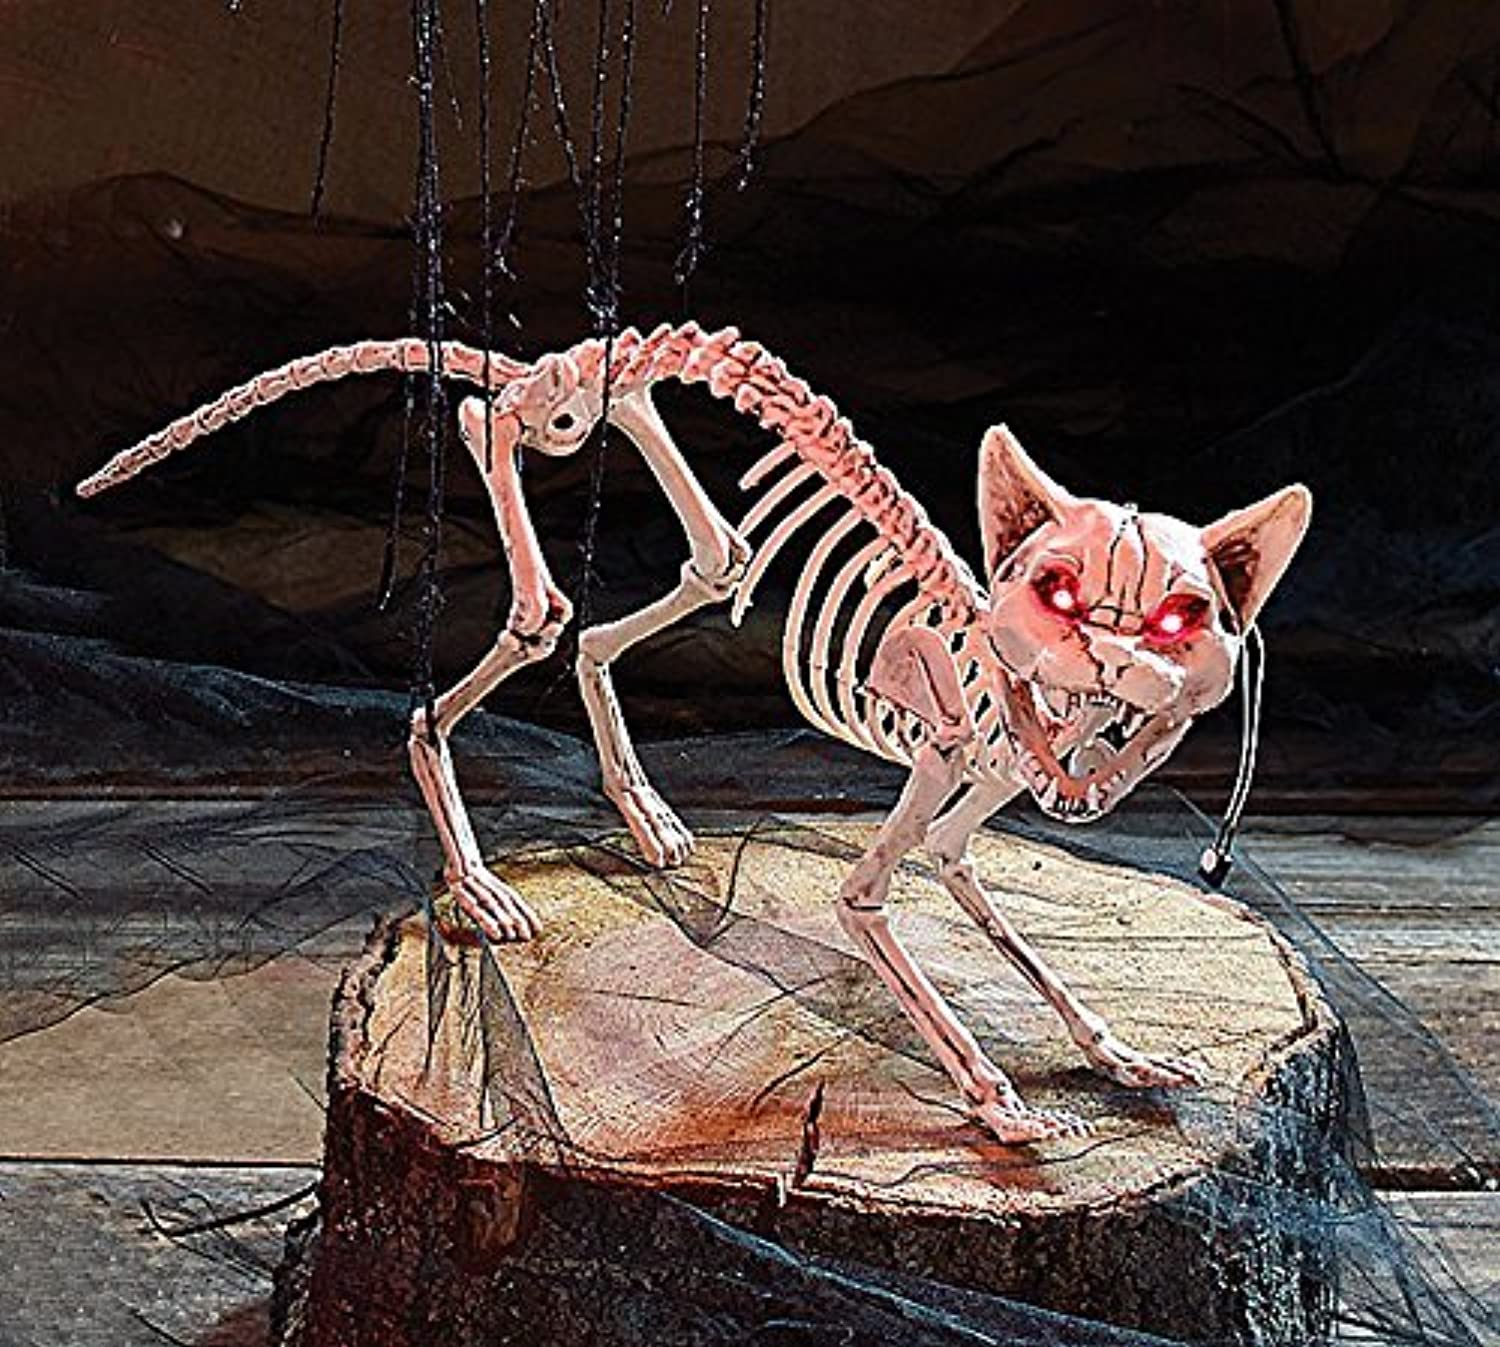 calidad oficial Burton and Burton Skeleton Skeleton Skeleton Cat Halloween Decoration with Light Up Eyes Clap Activated by Halloween  alto descuento